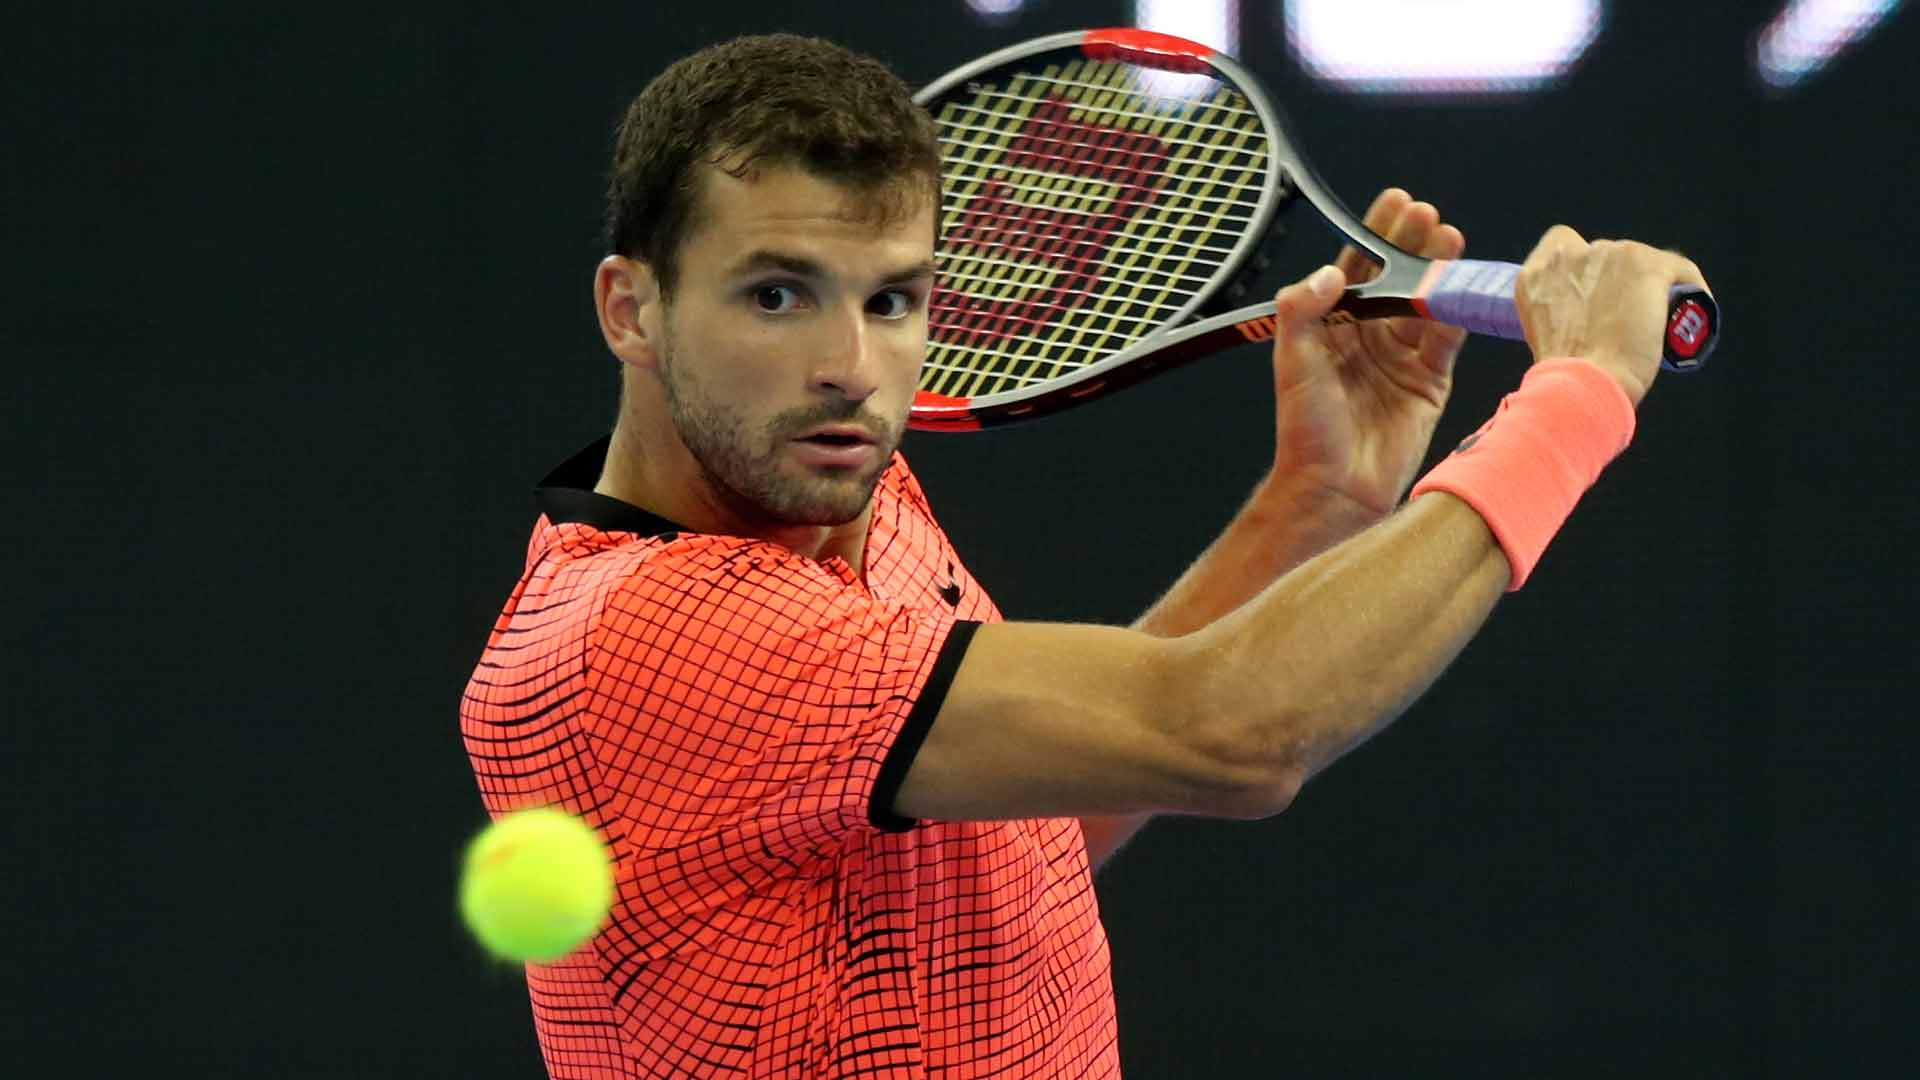 Grigor Dimitrov scores a huge win over Rafael Nadal on Friday at the China Open.